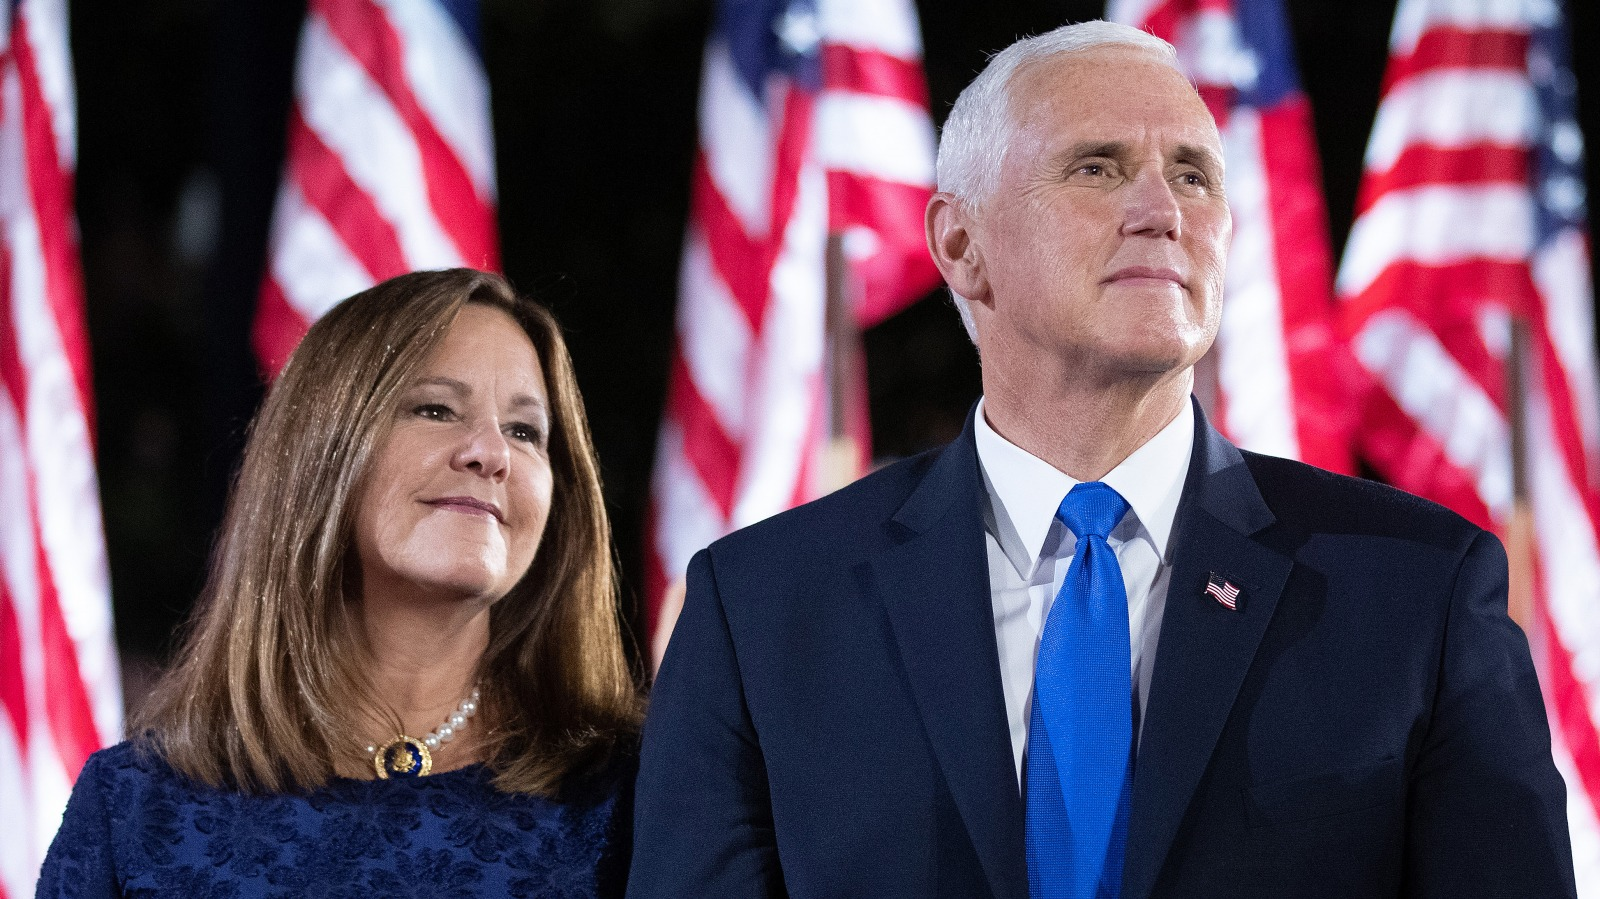 The unsaid things in Mike Pence's marriage